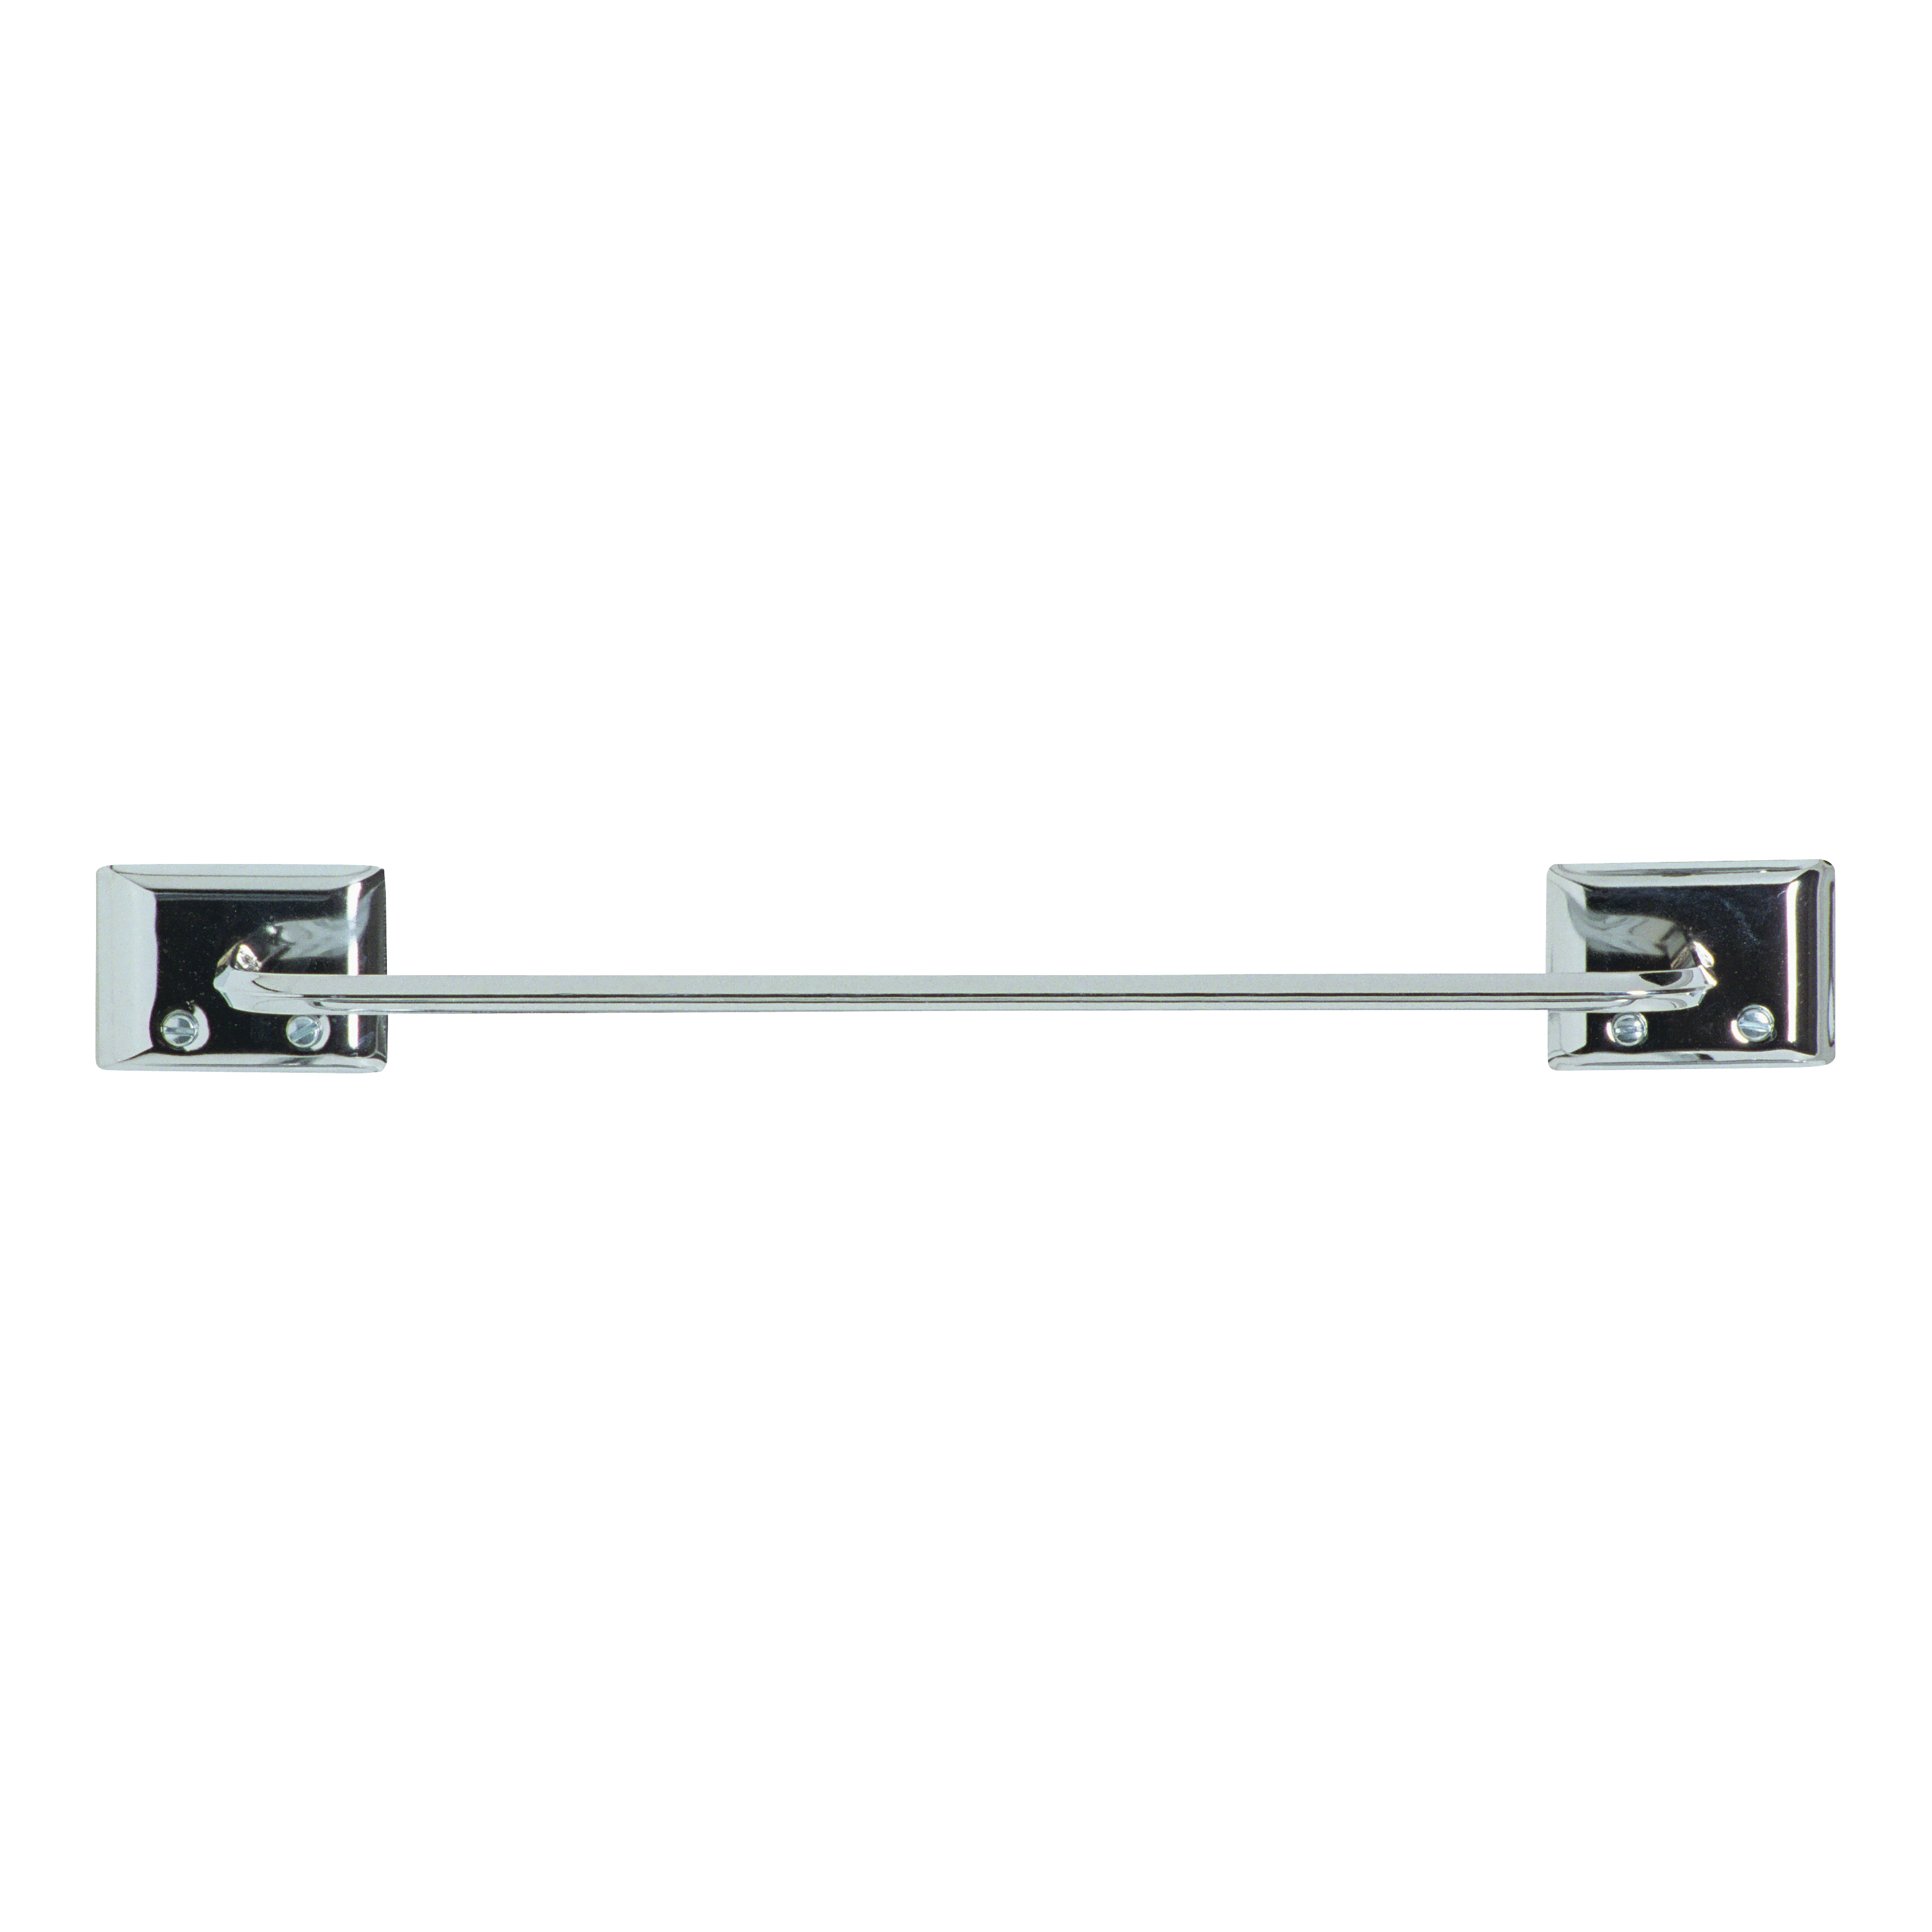 Picture of DECKO 38120 Towel Bar, 12 in L Rod, Steel, Chrome, Surface Mounting